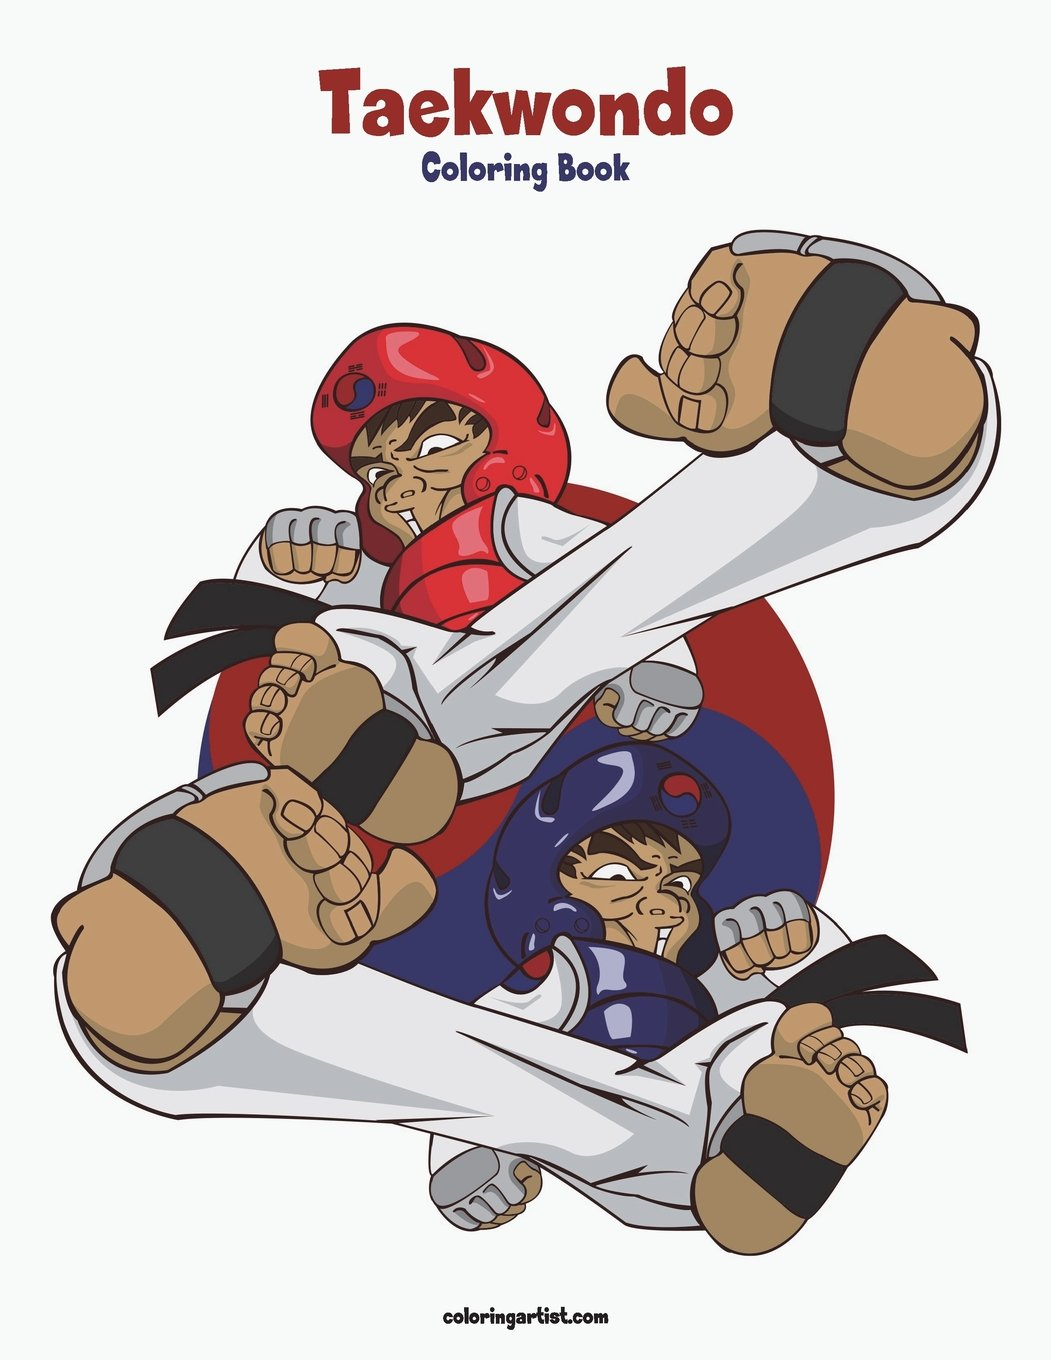 Taekwondo Coloring Page - Get Coloring Pages | 1360x1051